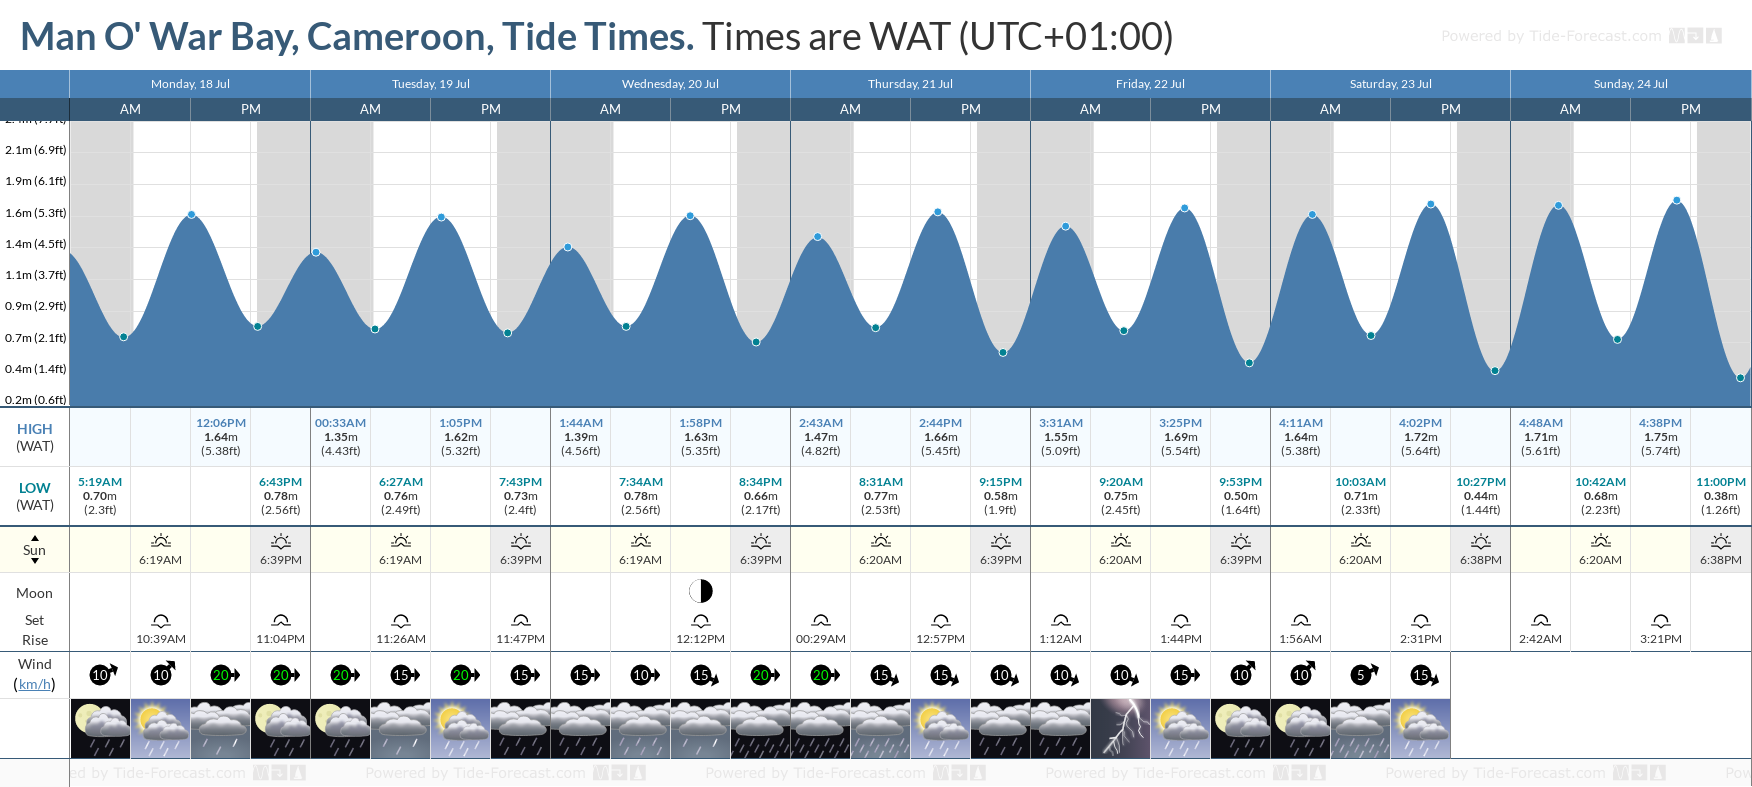 Man O' War Bay, Cameroon Tide Chart including high and low tide tide times for the next 7 days